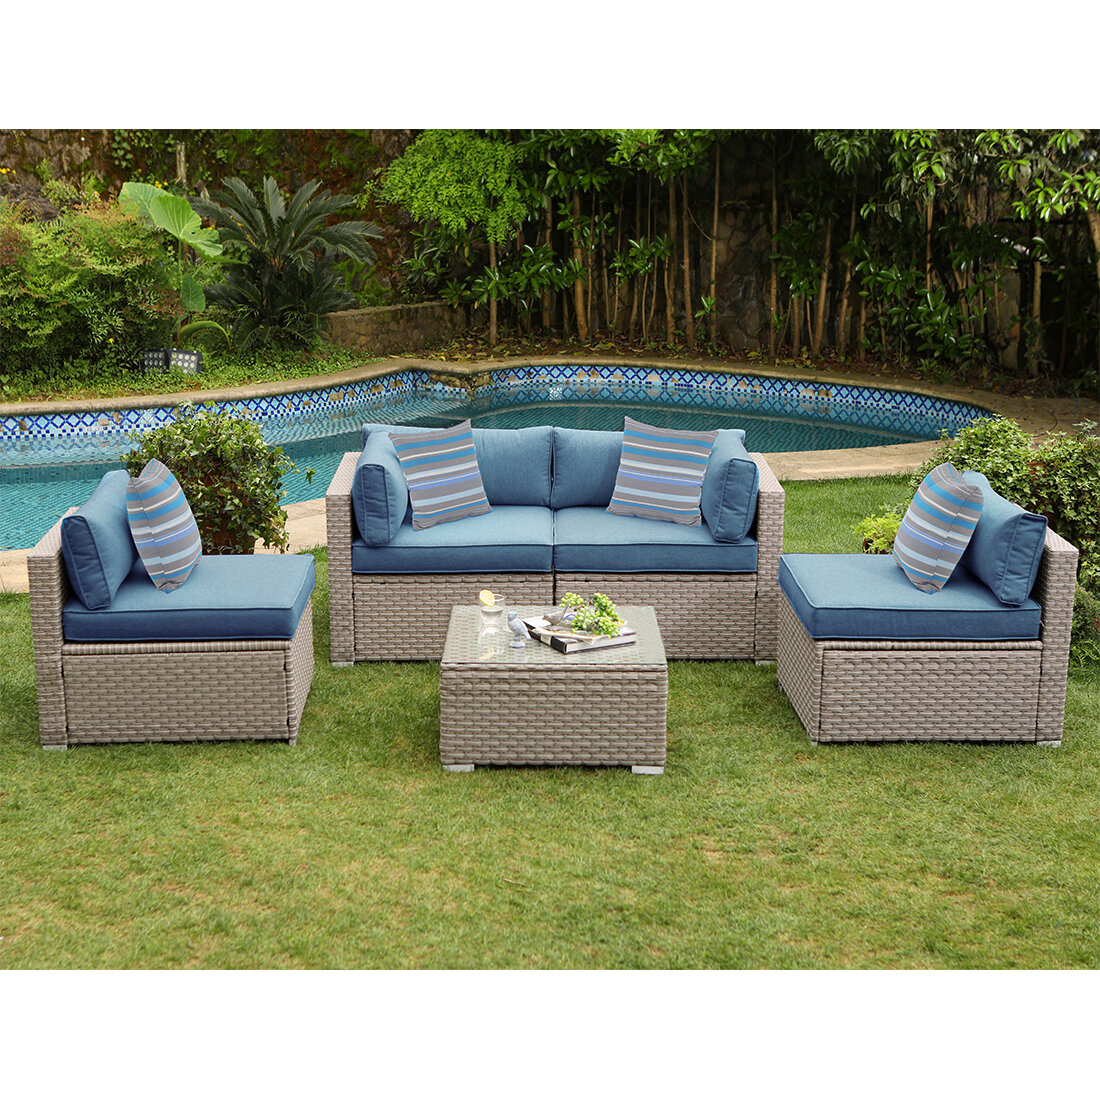 Rosecliff Heights Iain Outdoor Furniture 5 Piece Rattan Sectional Seating Group With Cushions Reviews Wayfair